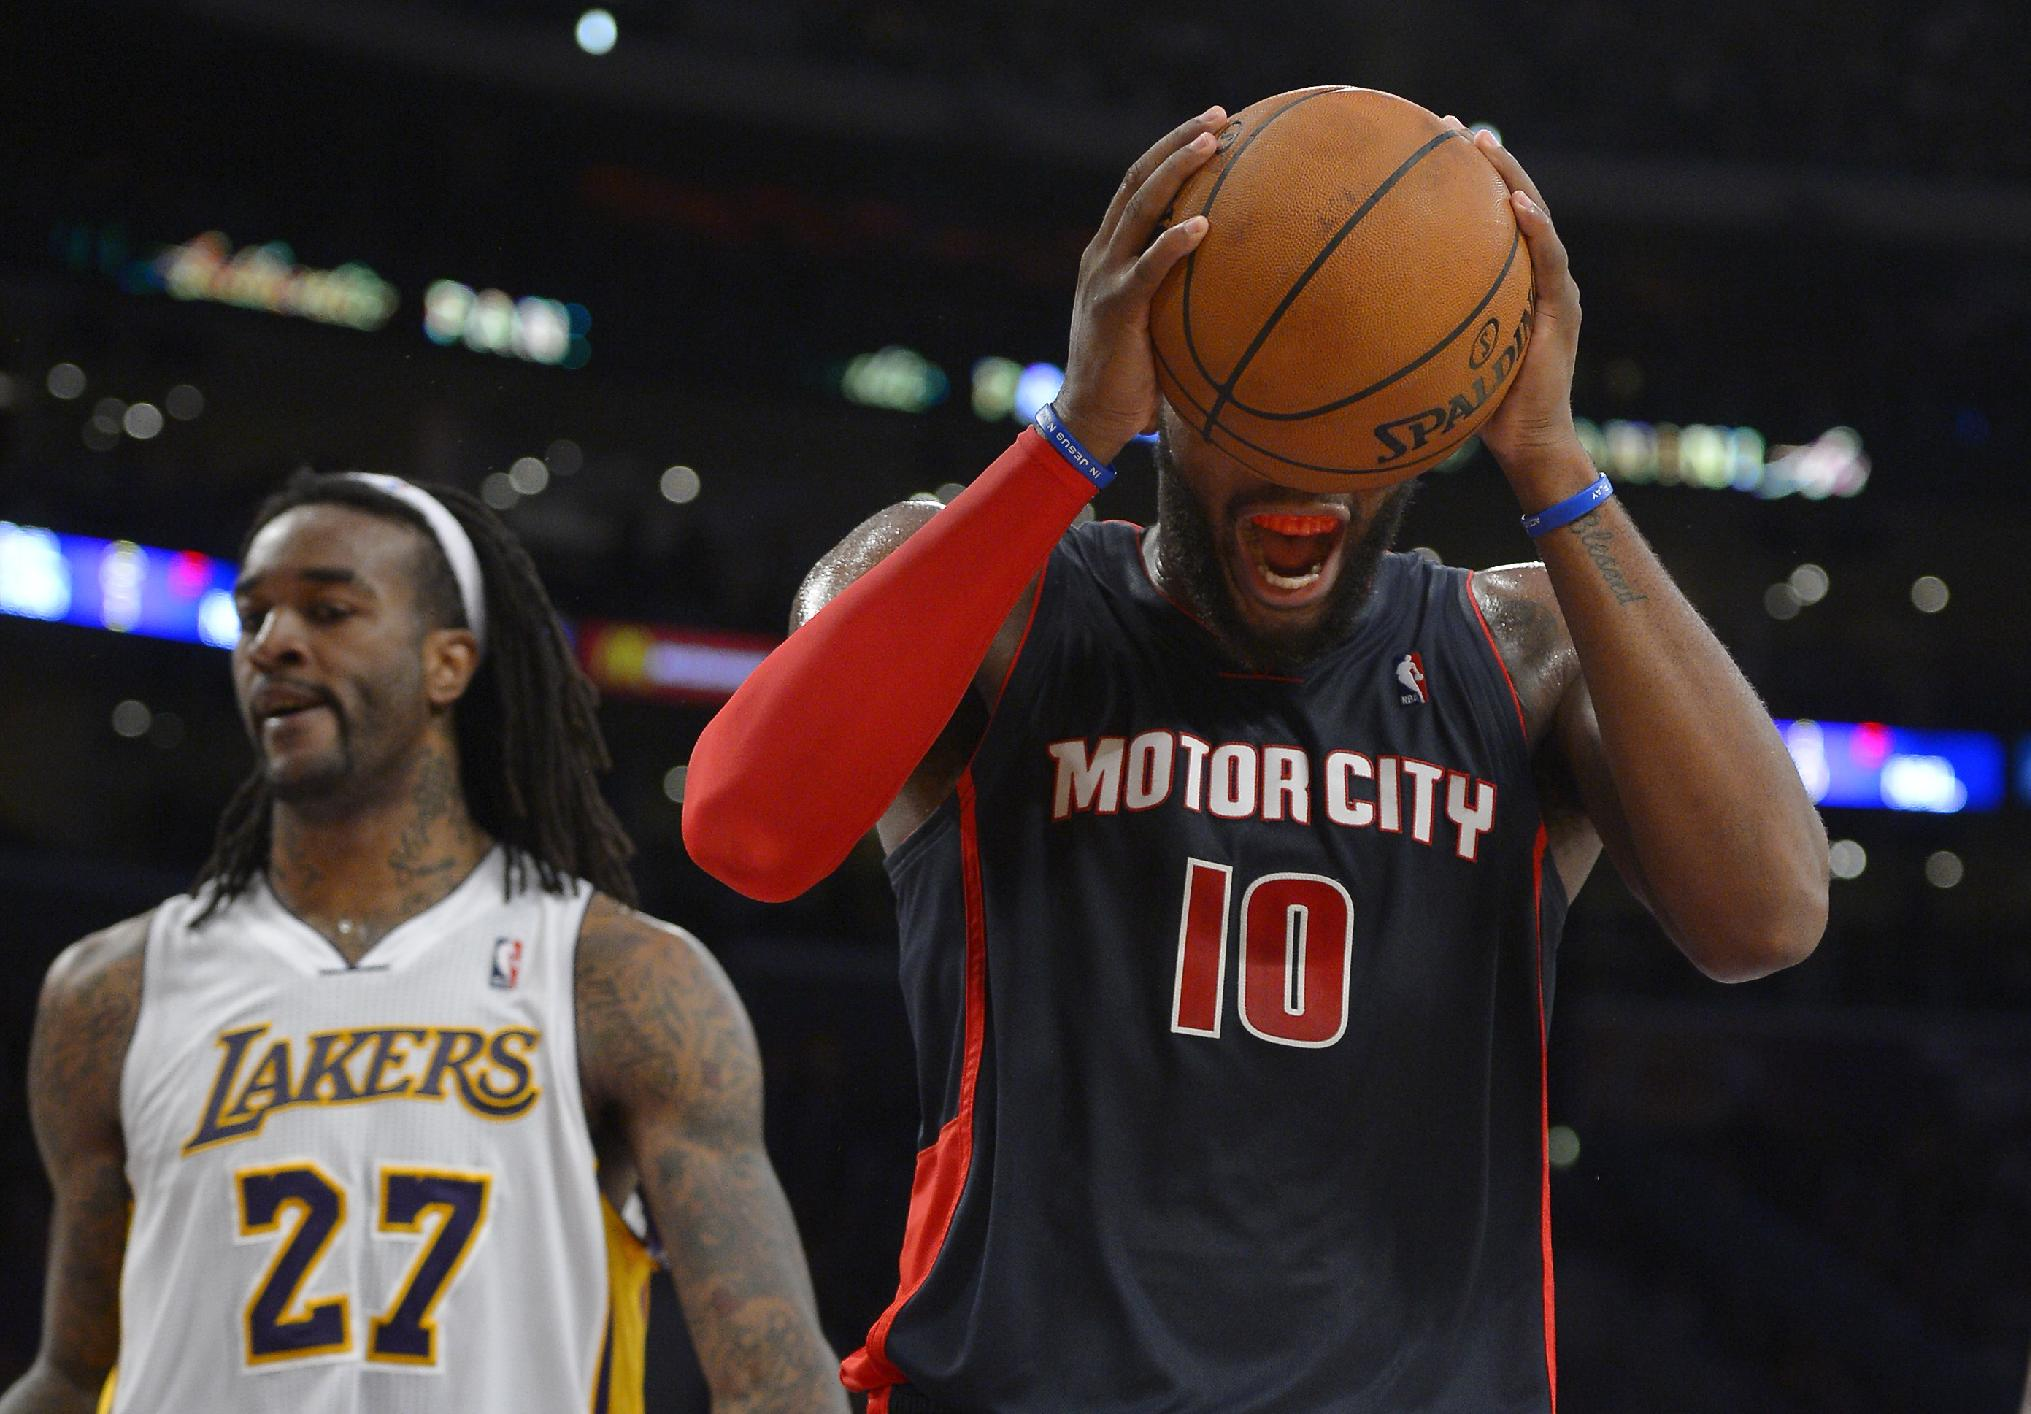 Detroit Pistons forward Greg Monroe, right, reacts after missing a shot as Los Angeles Lakers center Jordan Hill stands by during the second half of an NBA basketball game Sunday, Nov. 17, 2013, in Los Angeles